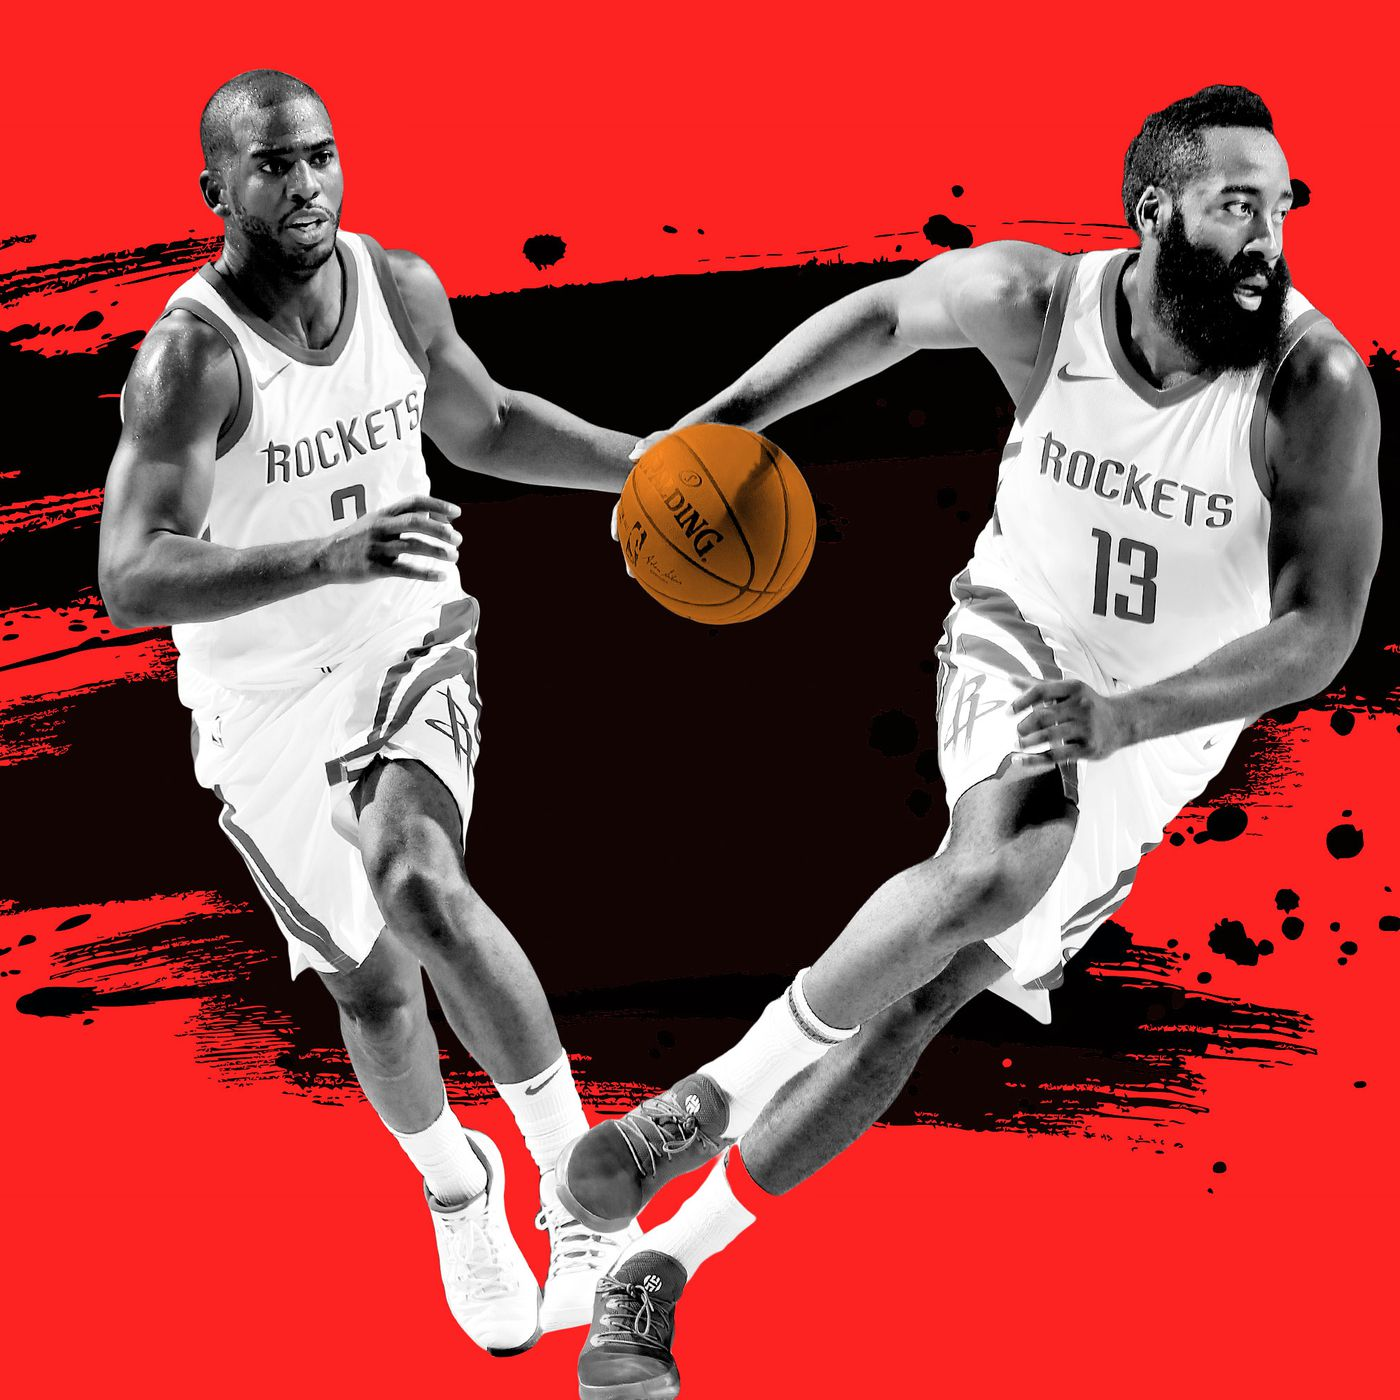 e9a6019fe408 The Harden-Paul Experiment Could Be the Best Offense in NBA History - The  Ringer